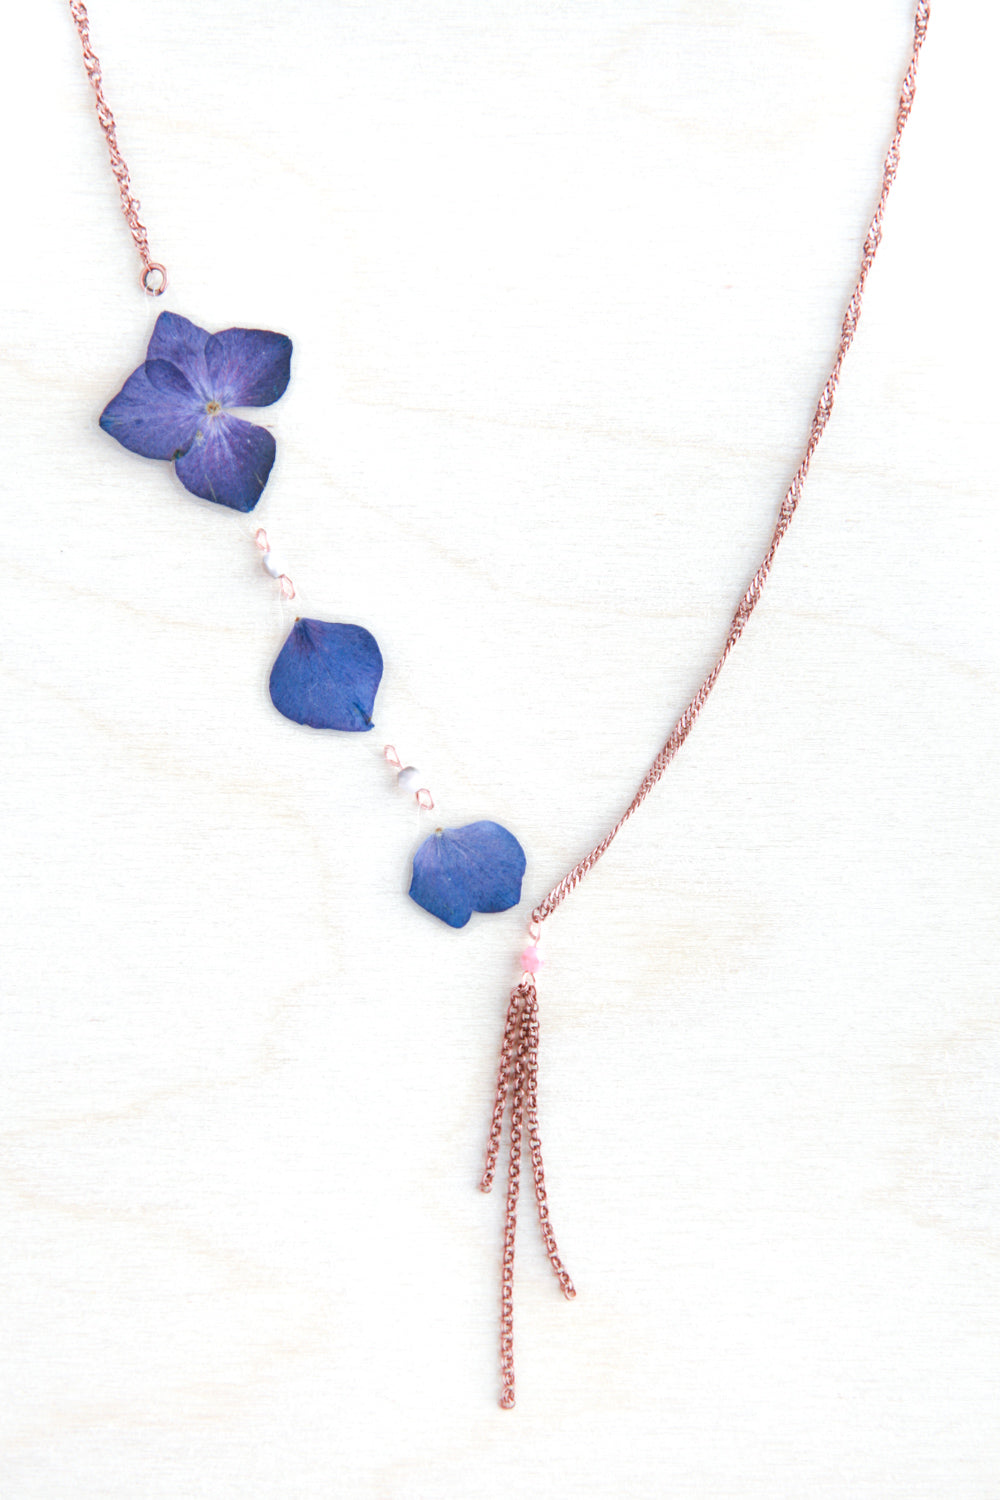 Purple Hydrangea Pressed Flower Necklace with Pink Glass Beads & Double Roll Dangles